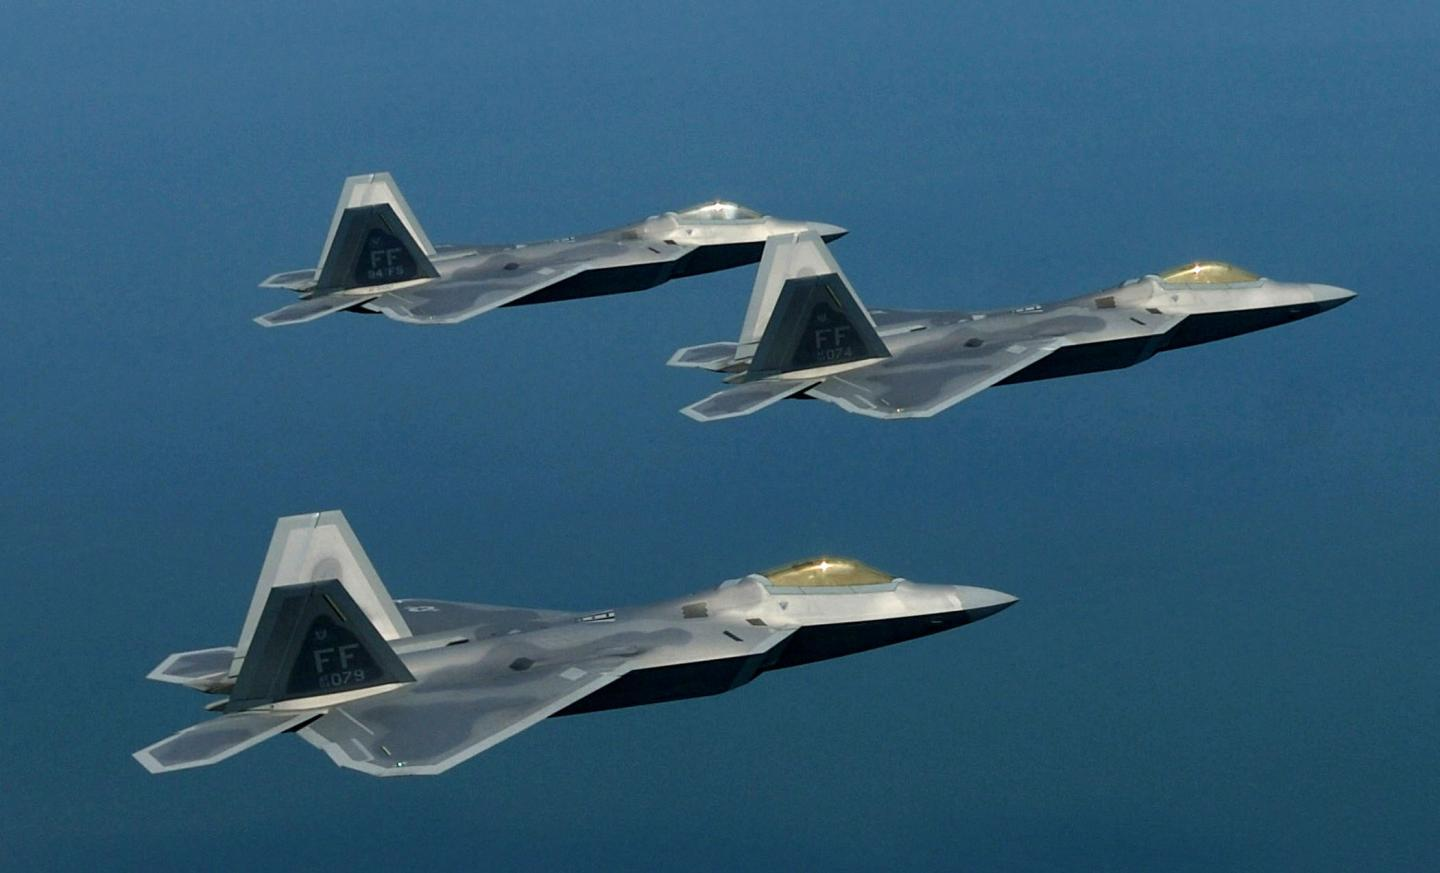 QnA VBage Another Reason Why the F-22 Raptor Is the Most Dangerous Fighter in the Sky